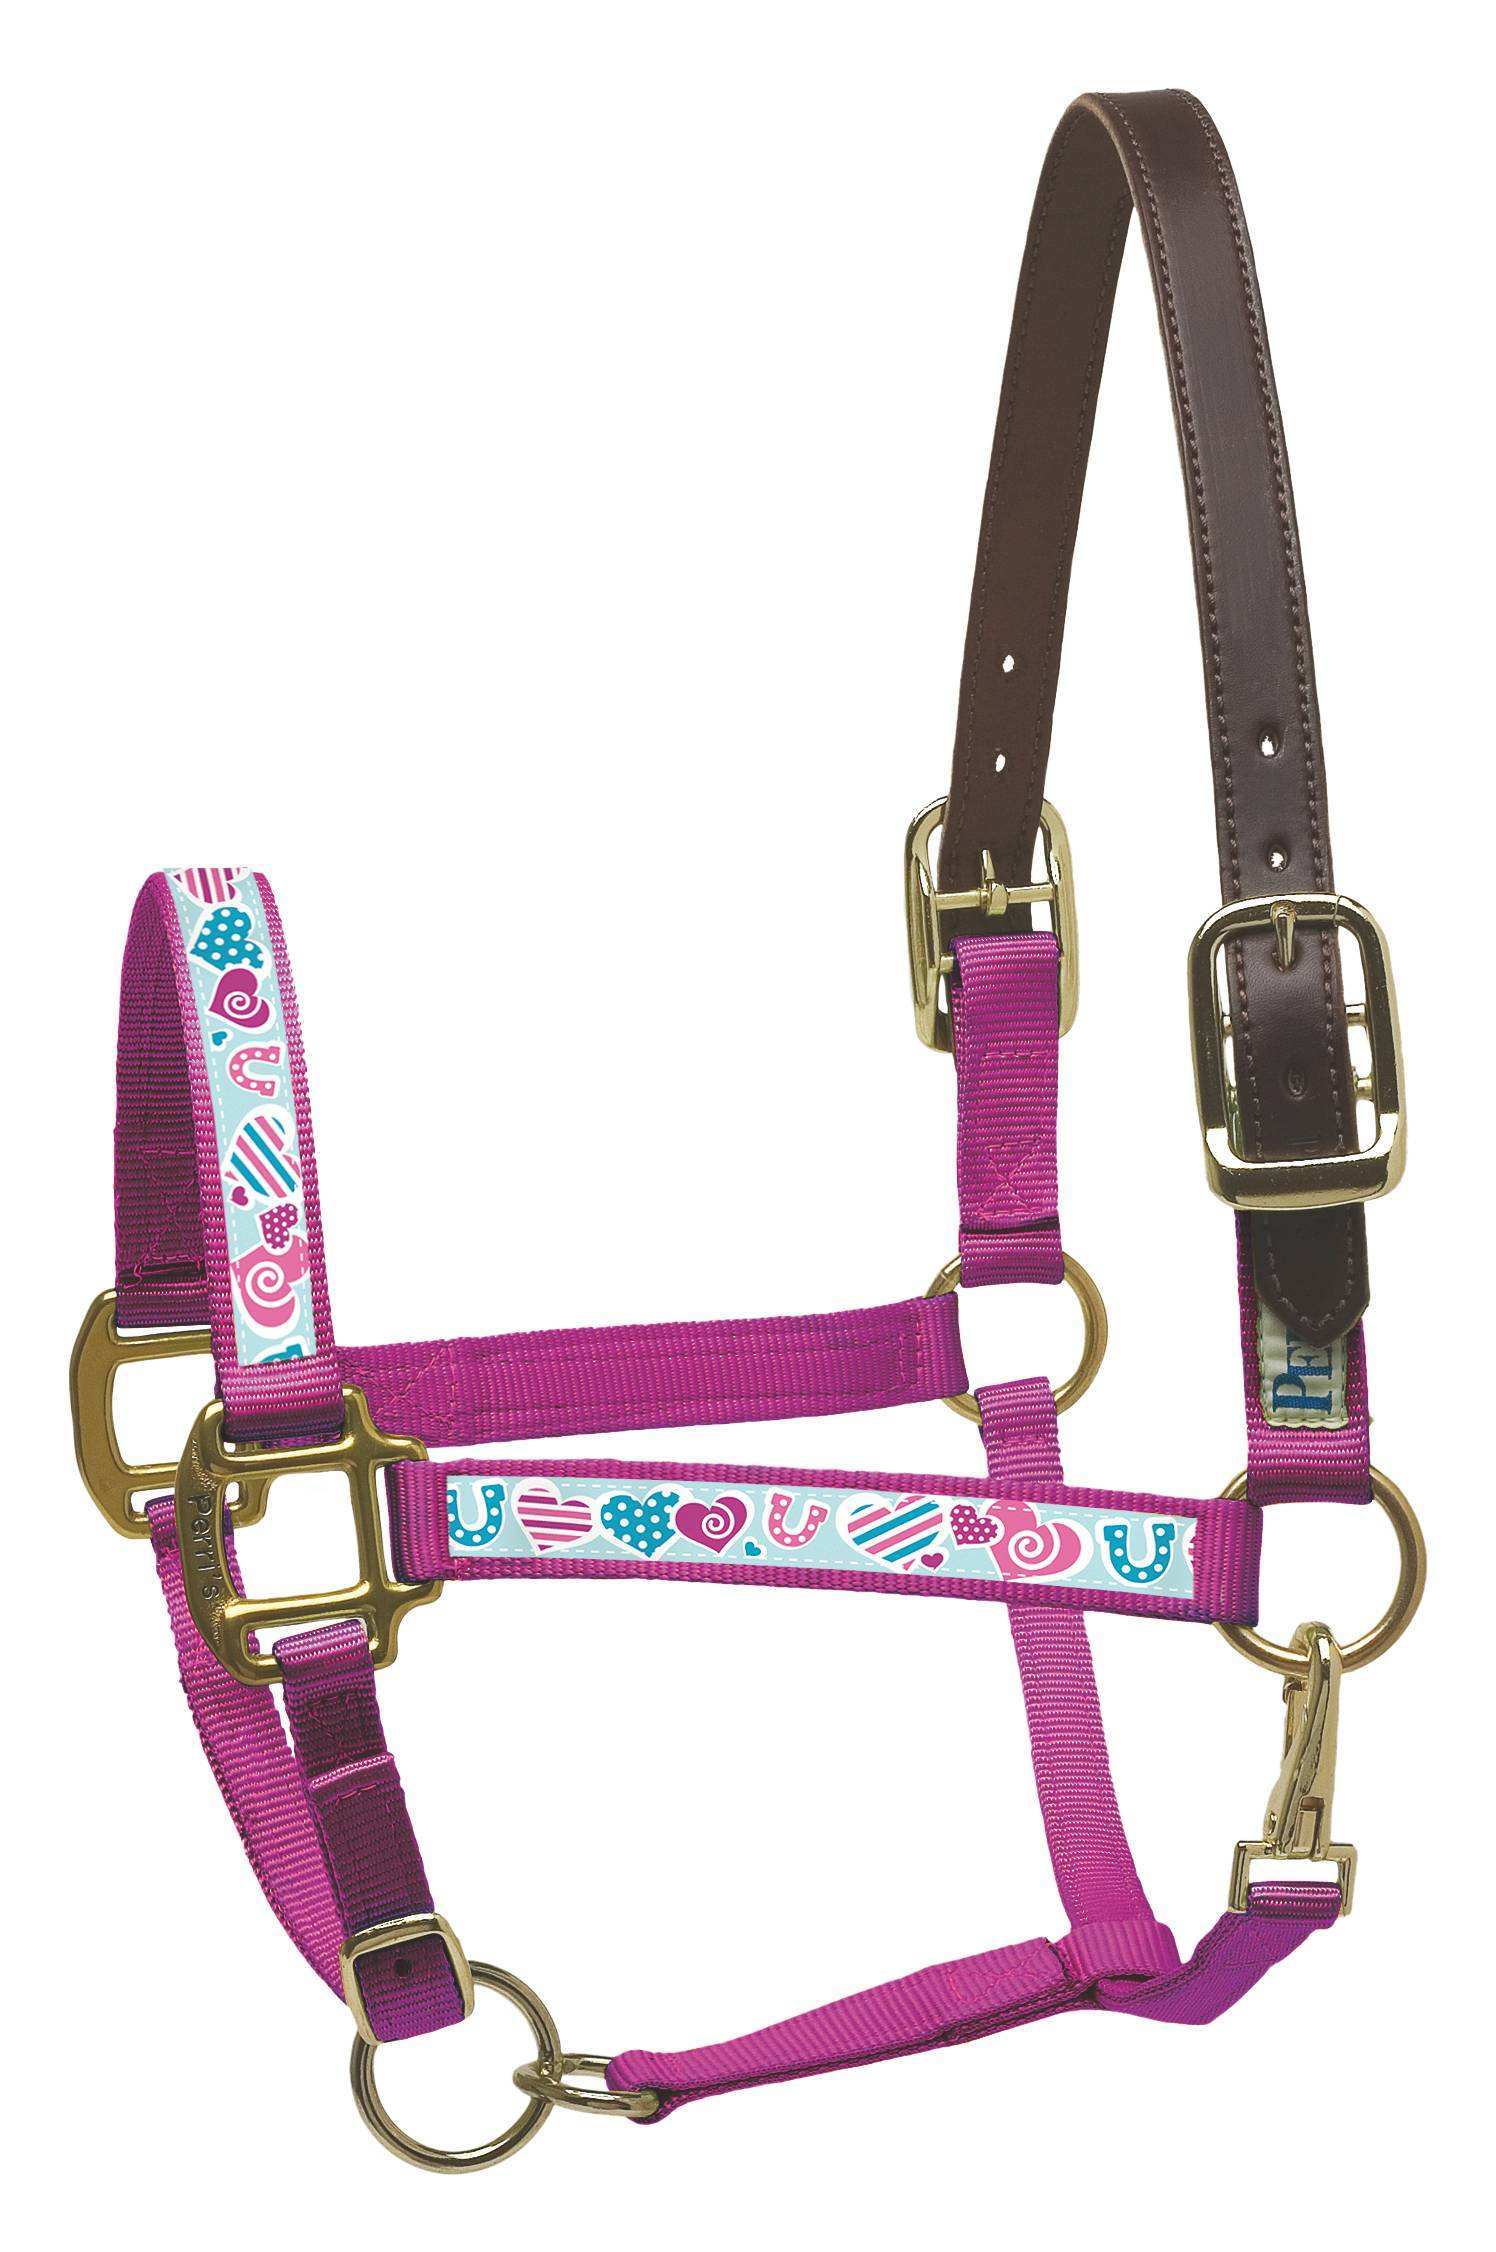 Perri's Leather Ribbon Safety Halter